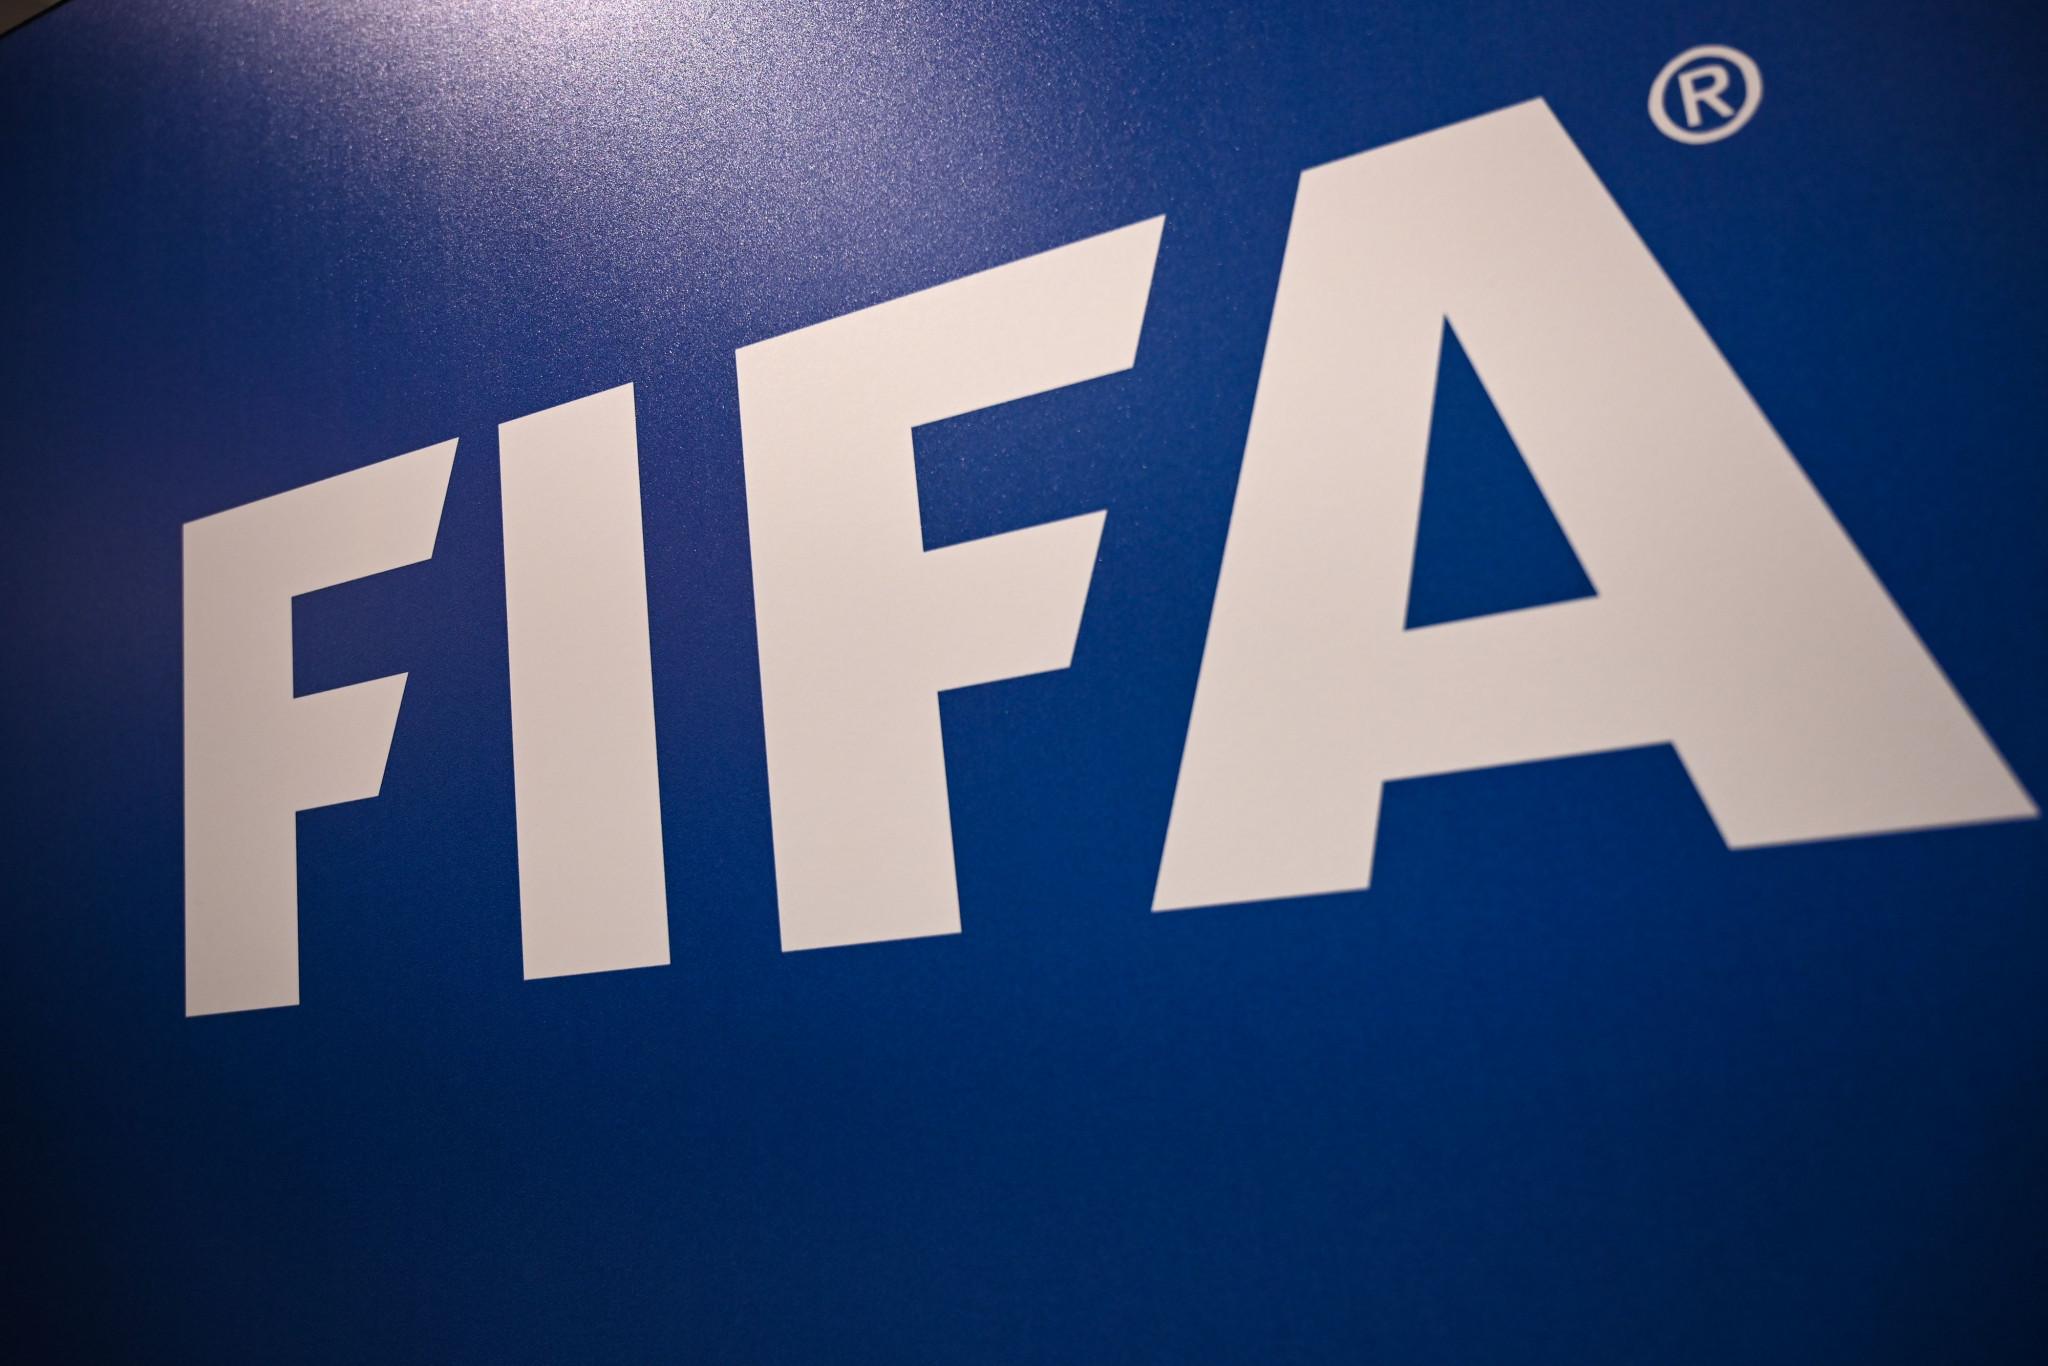 FIFA has banned former SLFA official Abu Bakarr Kabba for five years ©Getty Images